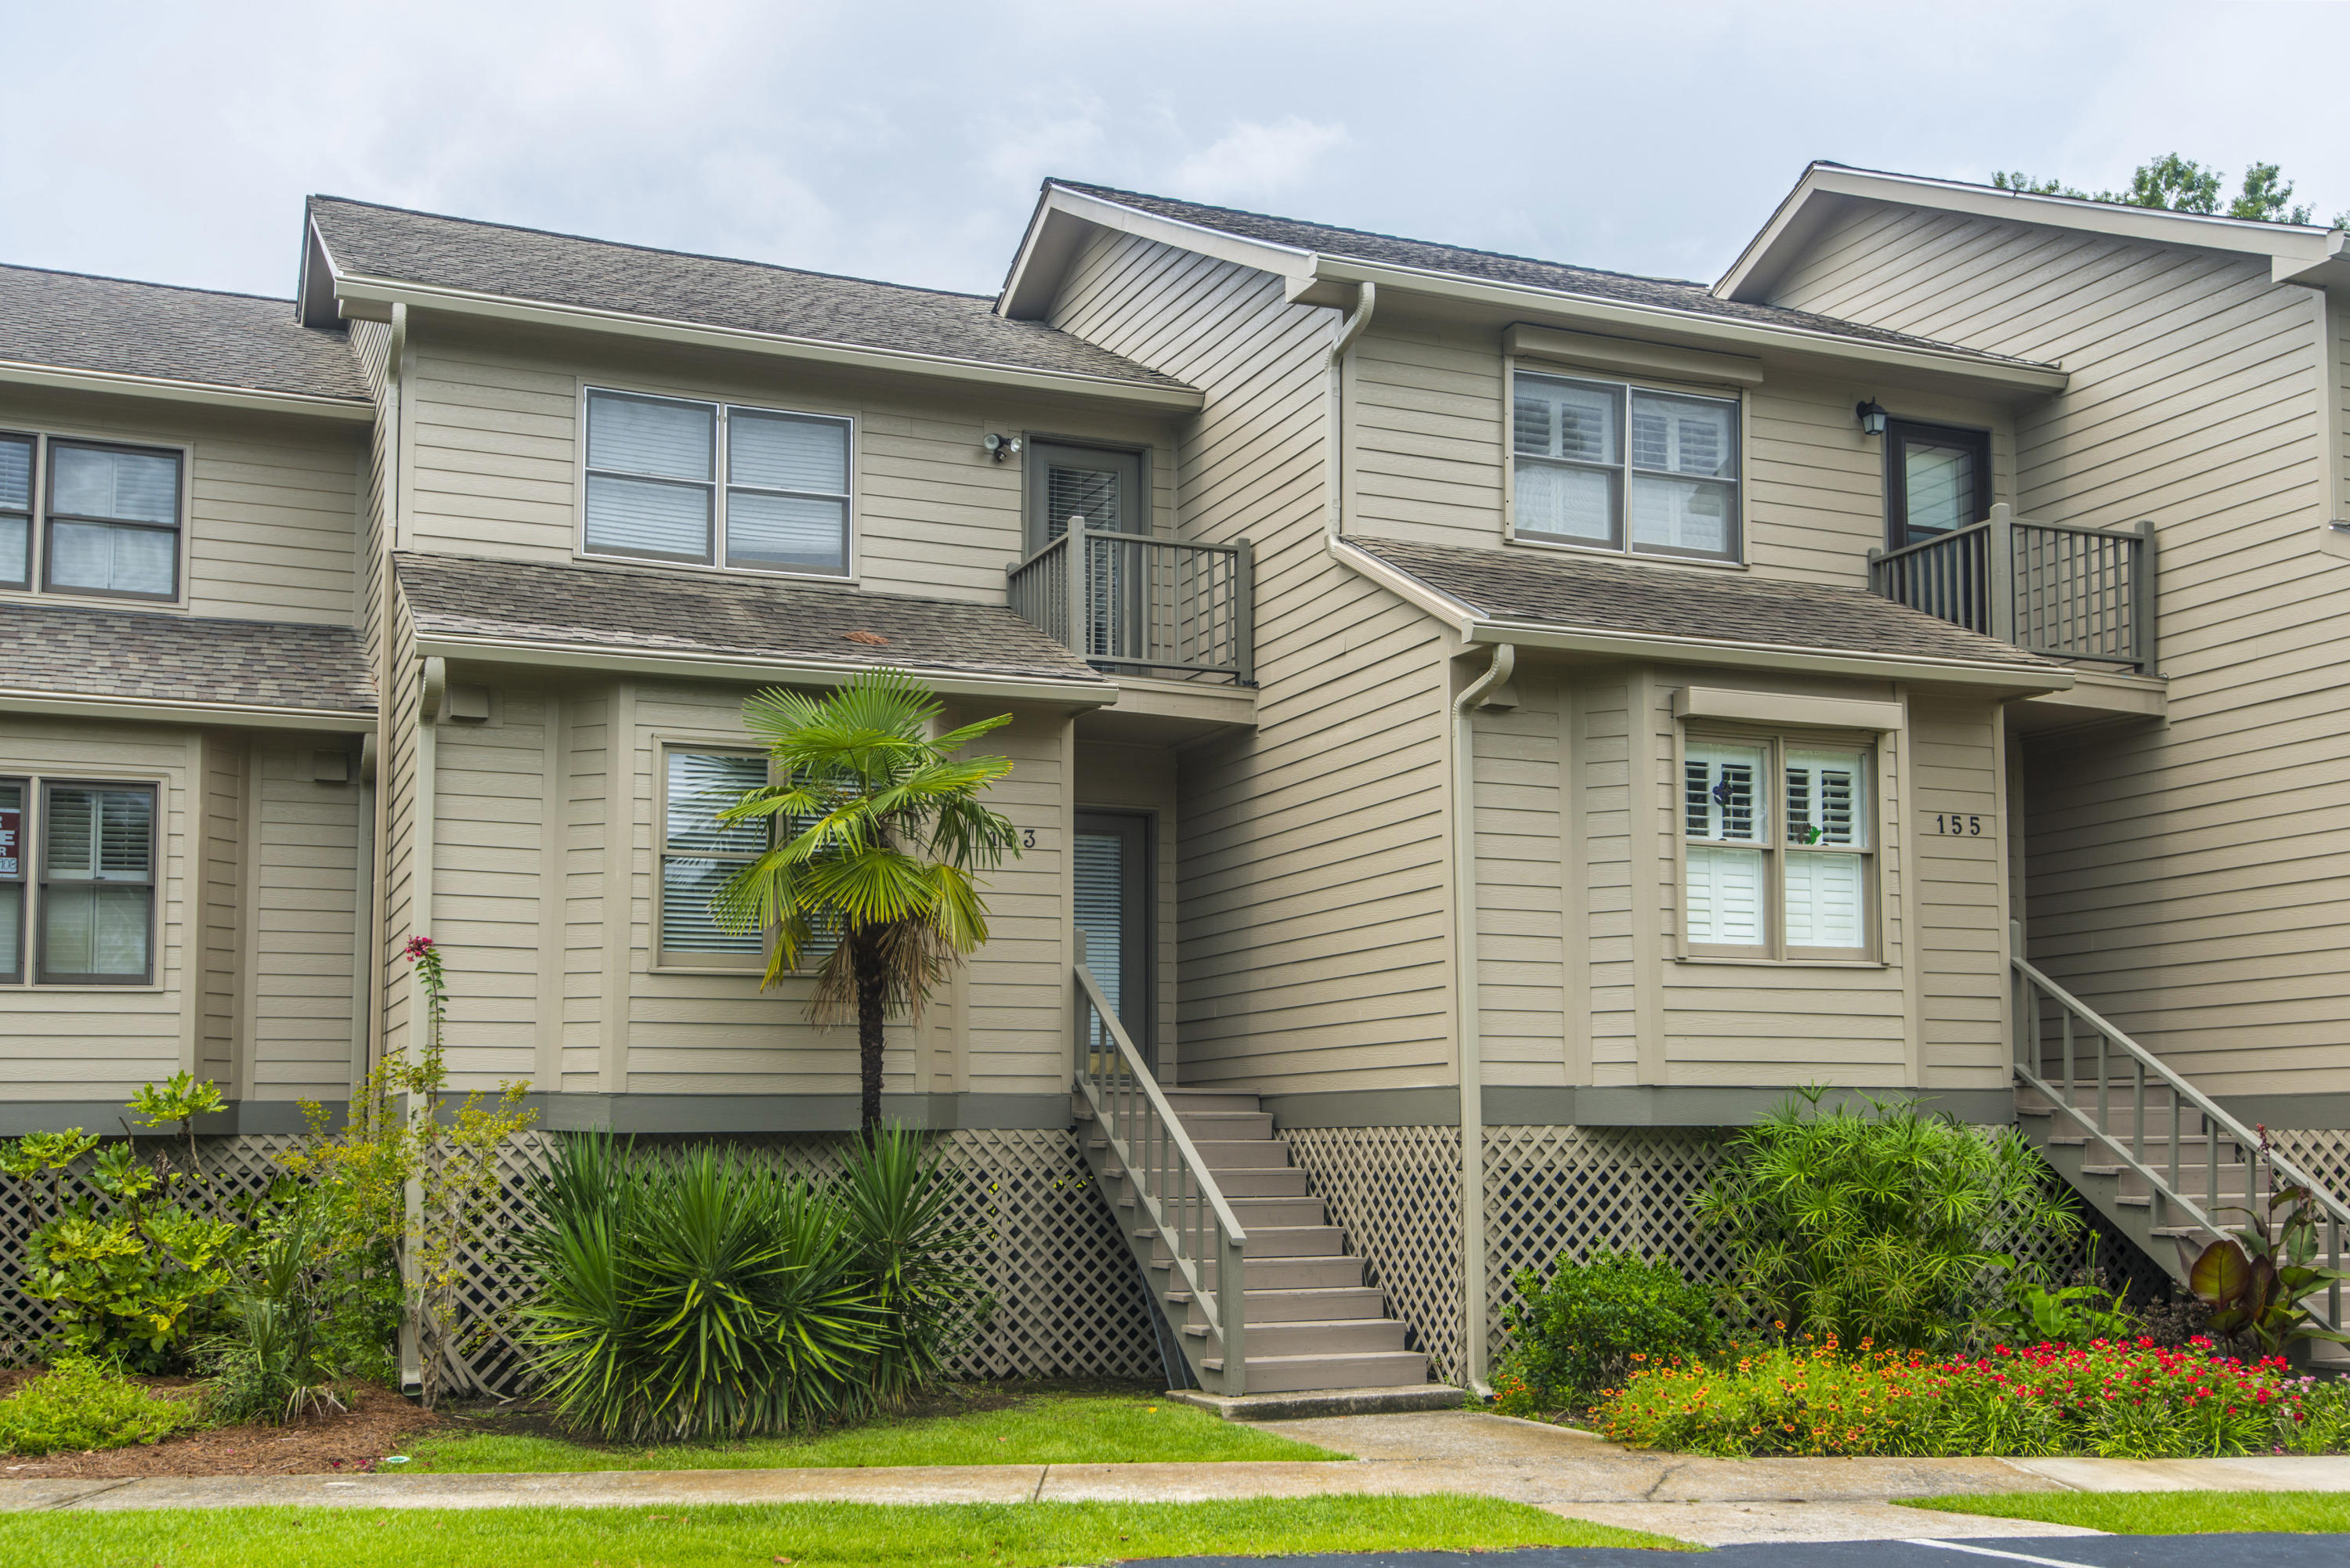 Waterway South Homes For Sale - 153 River Breeze, Charleston, SC - 15